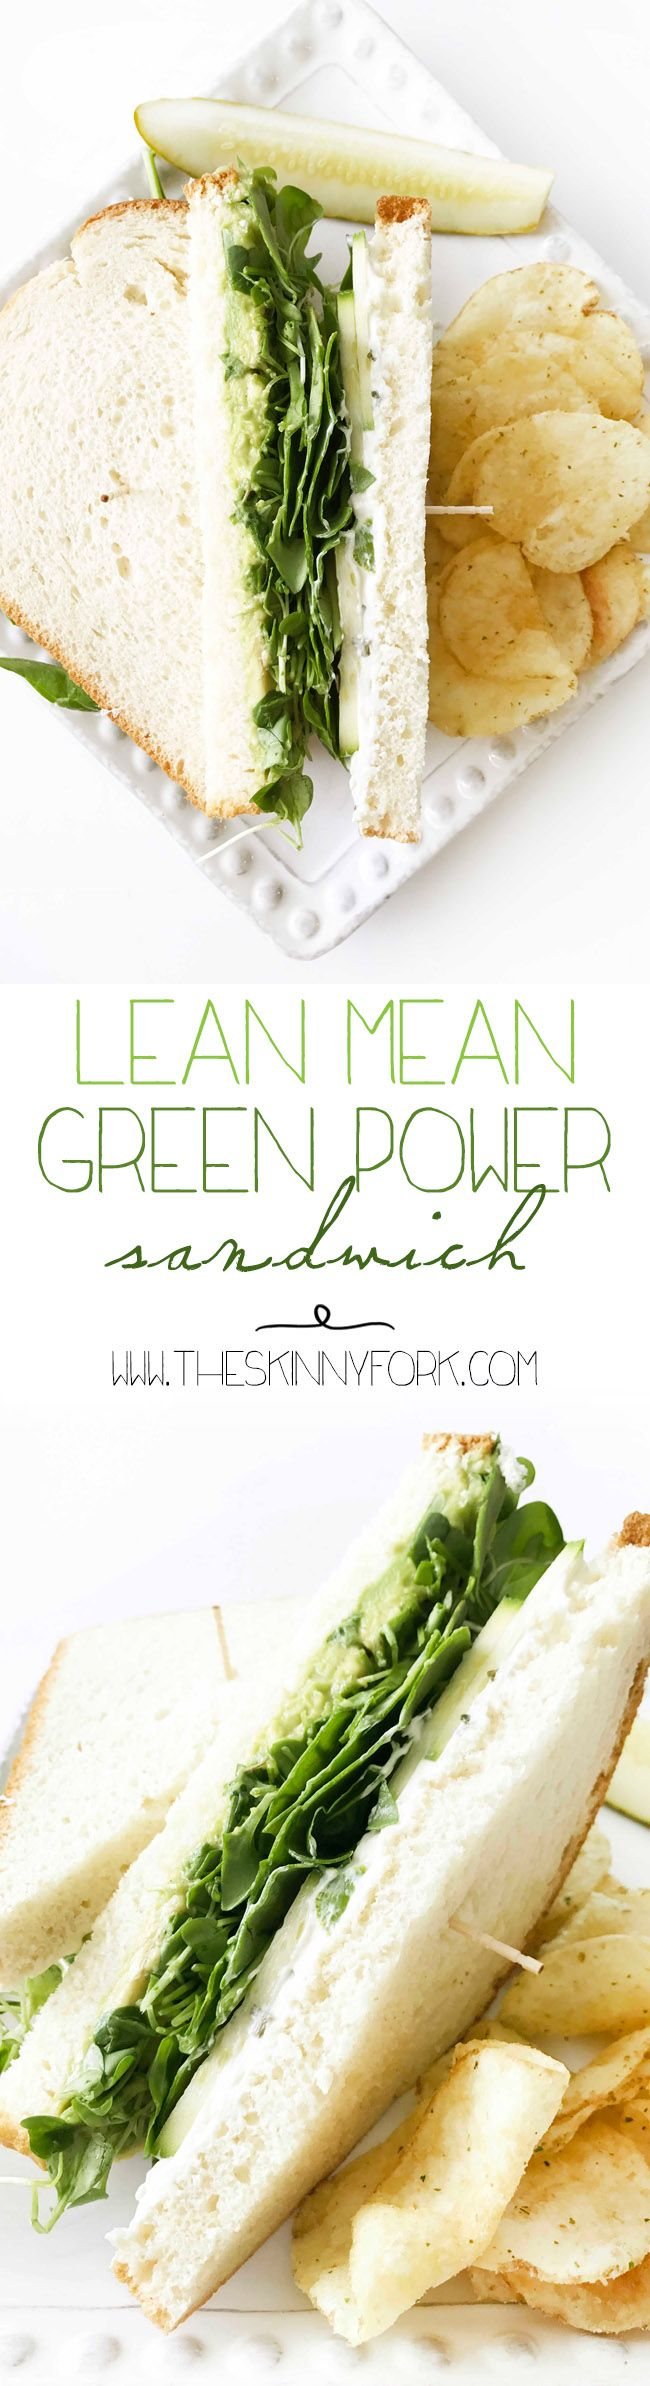 It's the NEW New New Lean Mean Green Power Sandwich! It's loaded up with almost everything green. It's filling, delicious, and meatless - perfect for these hot (and lazy) summer days! TheSkinnyFork.com | Skinny & Healthy Recipes